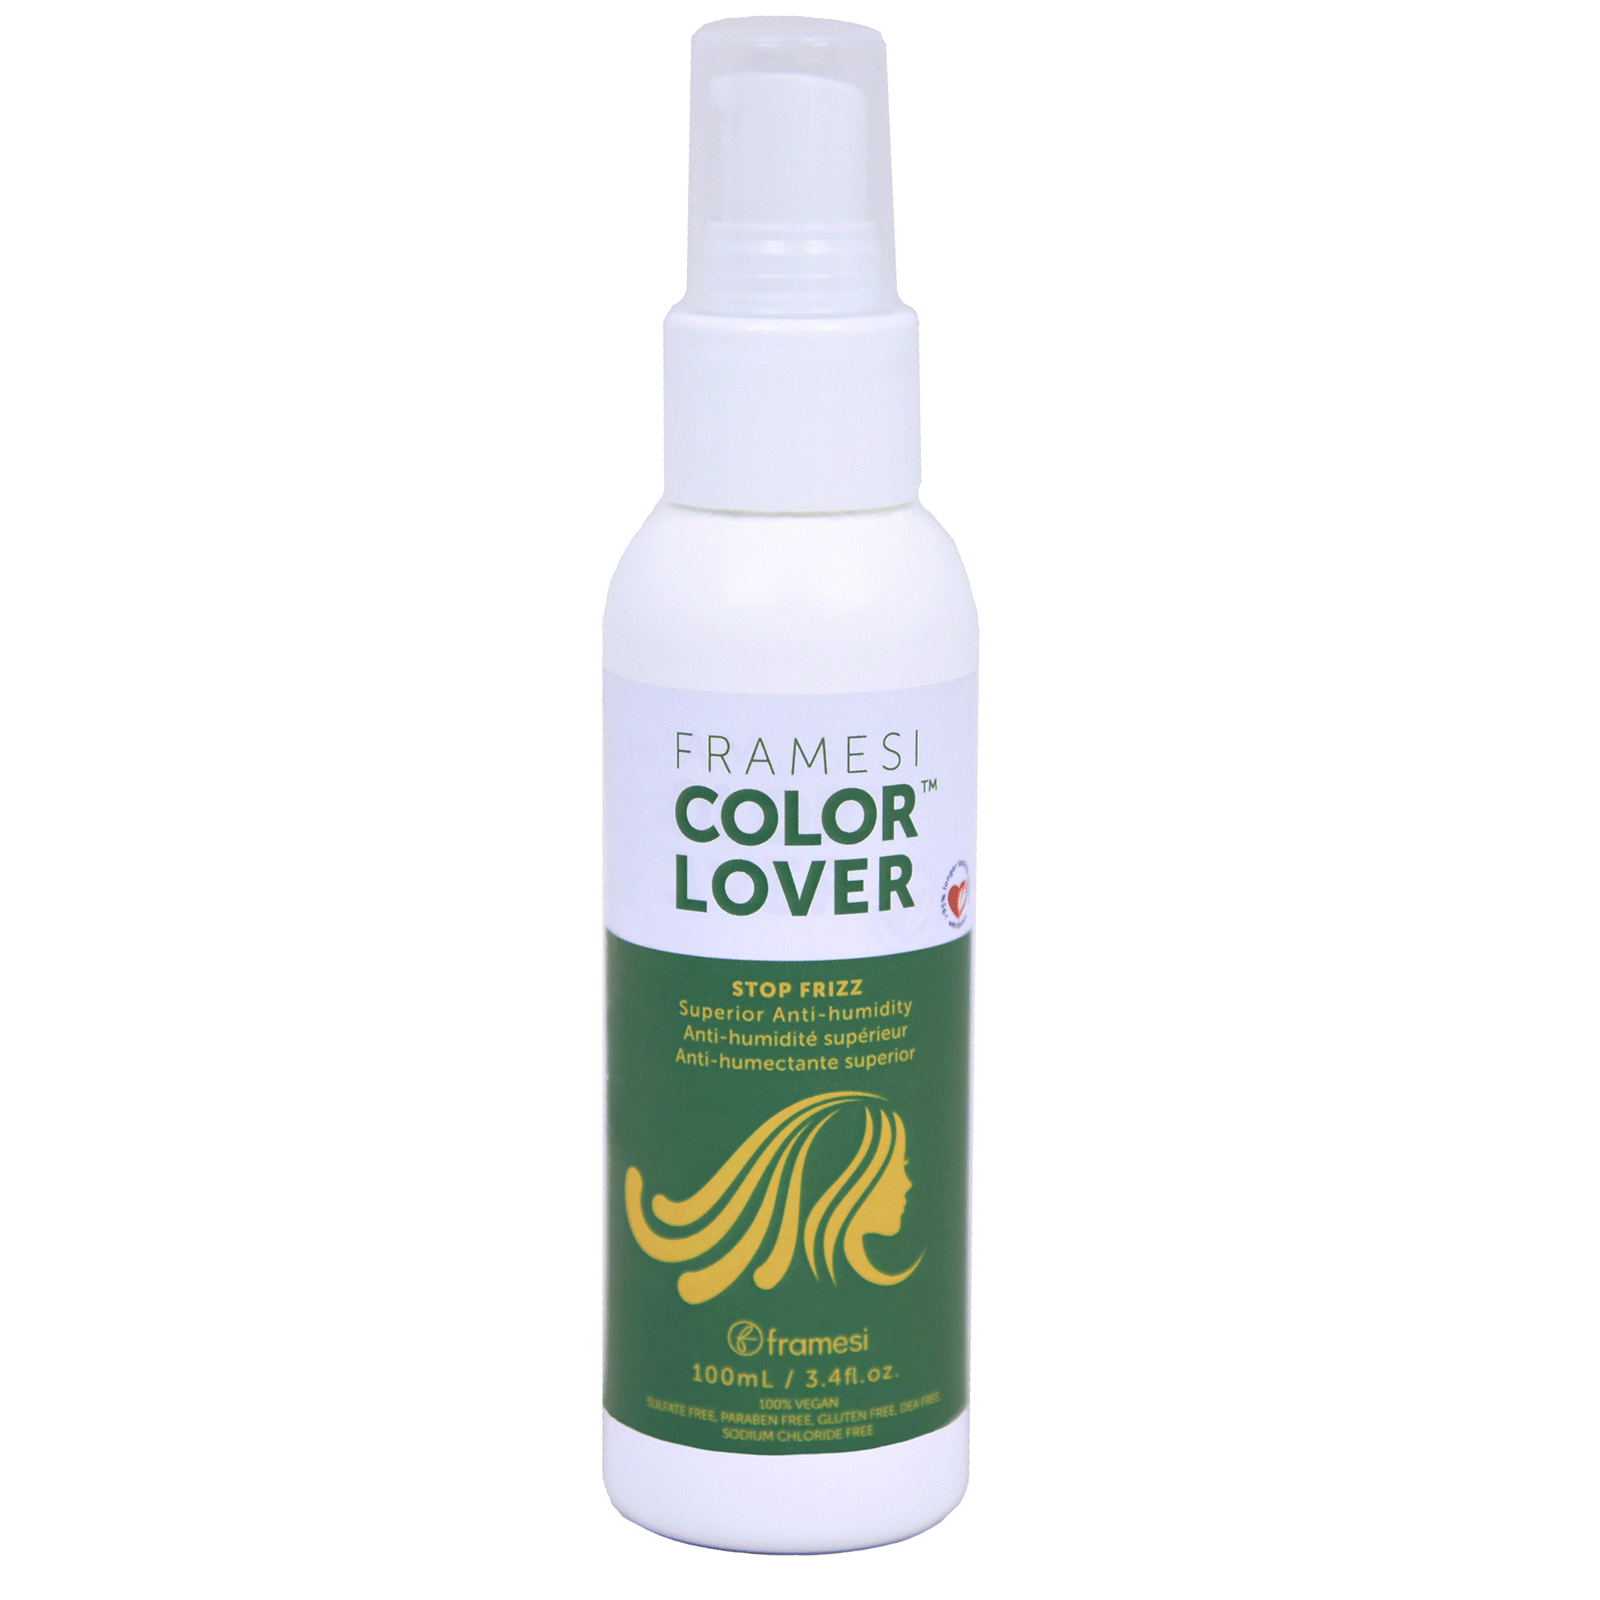 Framesi Color Lover Stop Frizz - Superior Anti-Humidity Serum 3.4oz